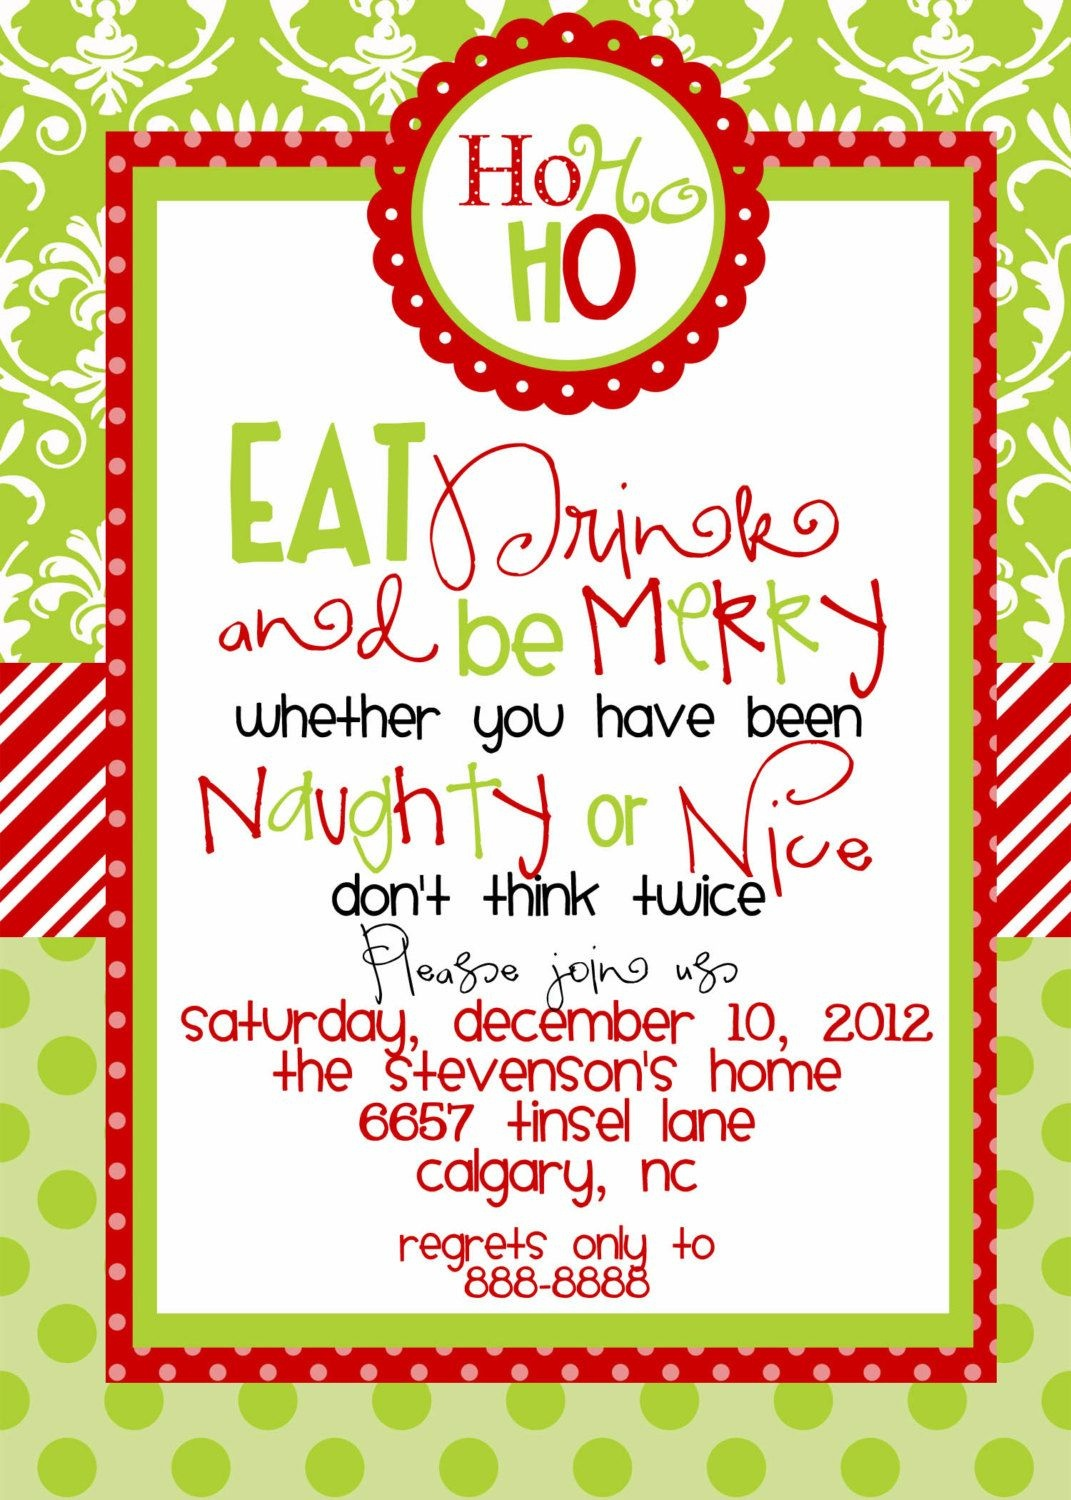 Custom Designed Christmas Party Invitations Eat Drink And Be Merry - Free Printable Christmas Invitations